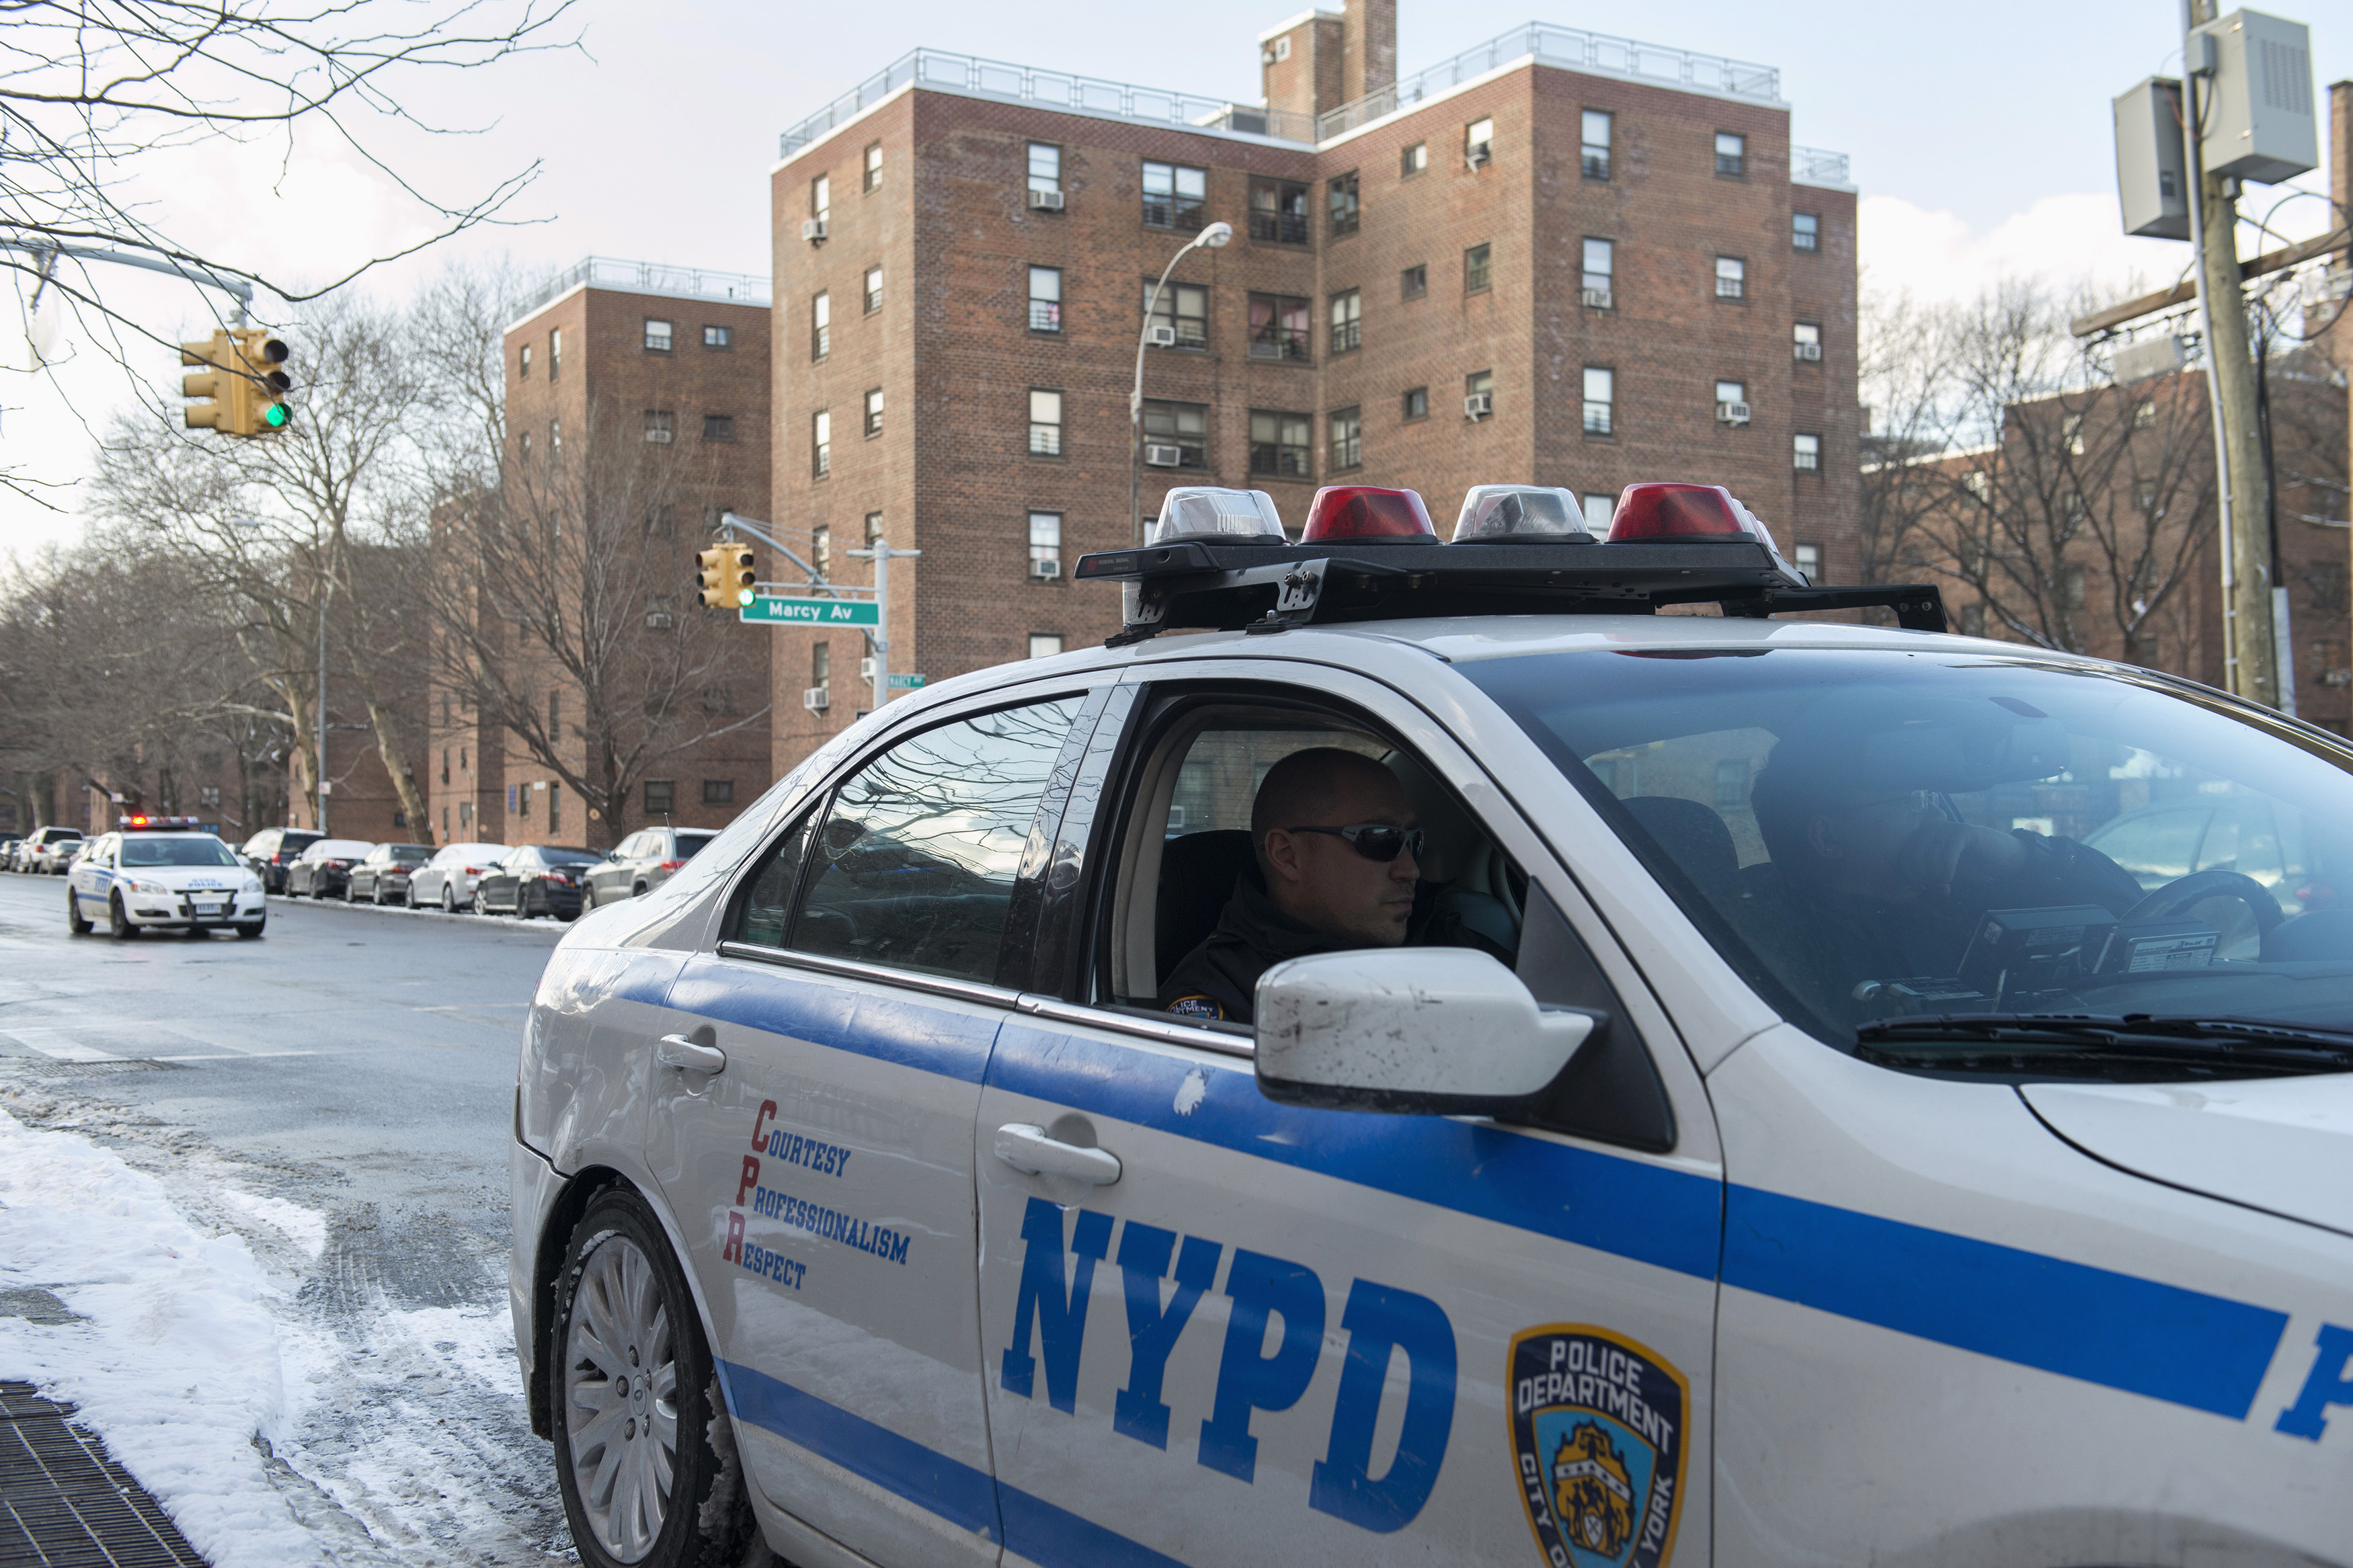 A New York Police Department patrol vehicle is seen near the Marcy Houses public housing development in the Brooklyn borough of New York January 9, 2015.